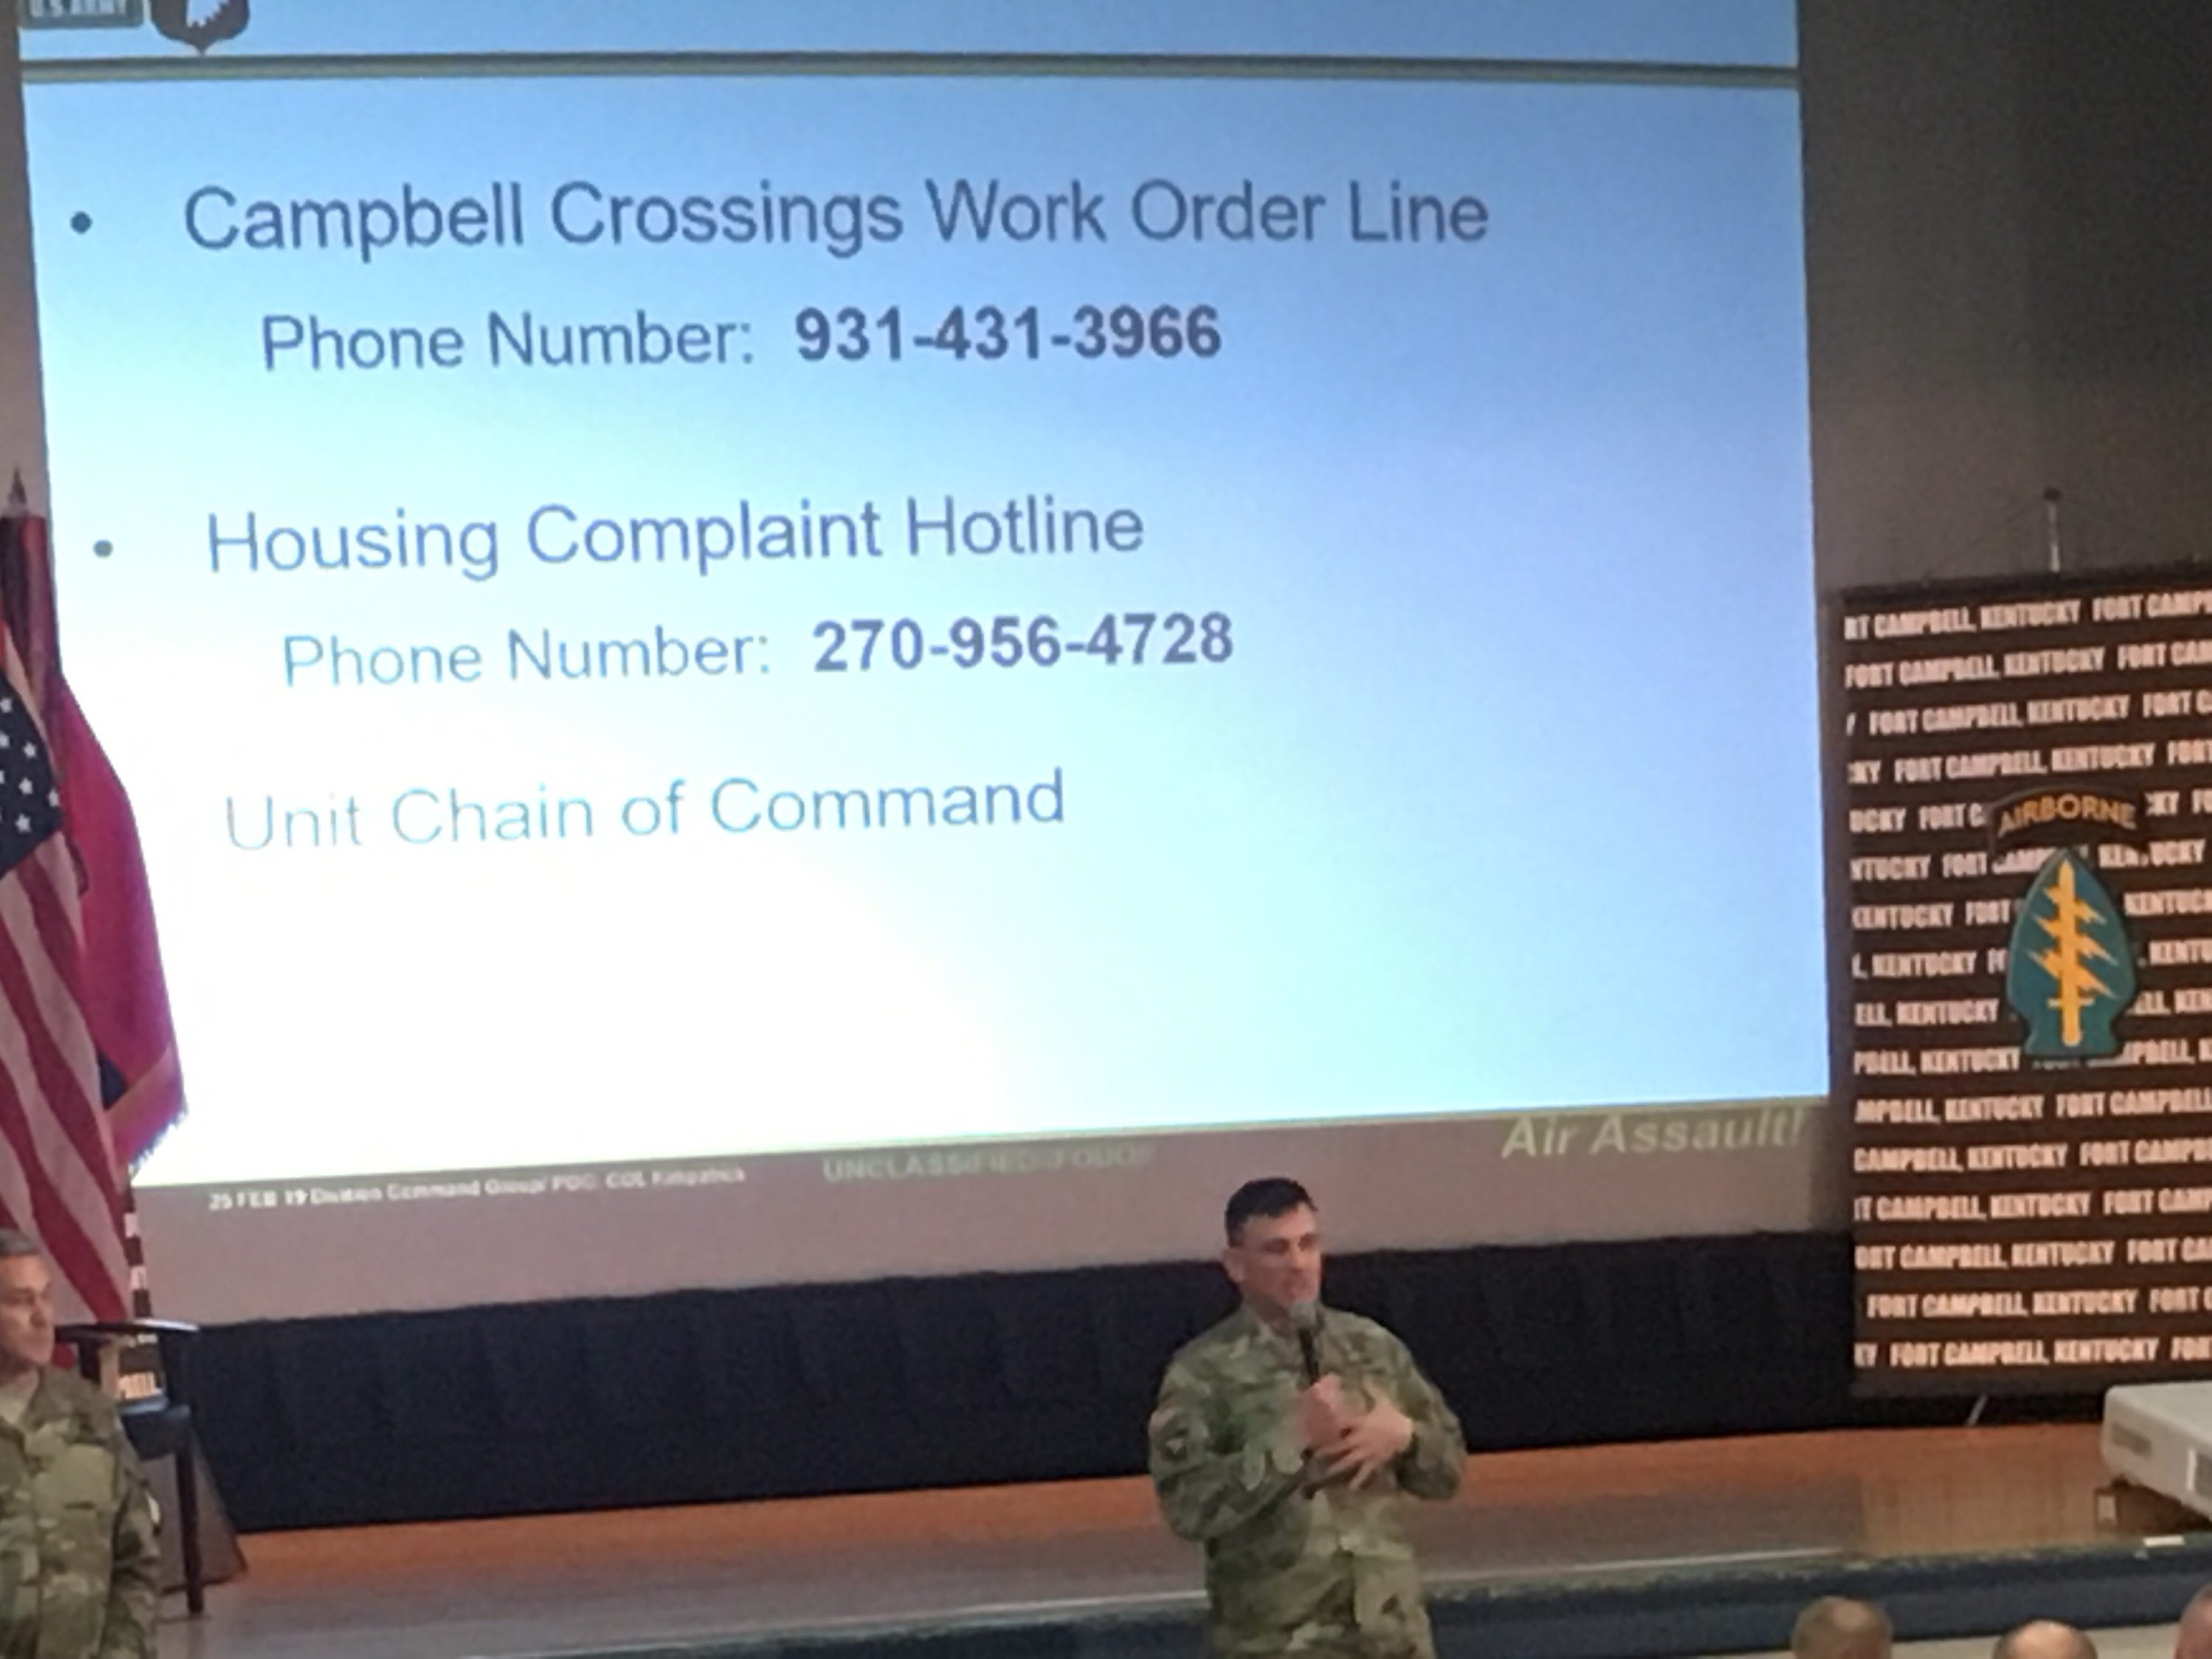 Fort Campbell Garrison Commander Col. Joseph P. Kuchan shares phone numbers for on-post residents to call with housing problems and complaints.